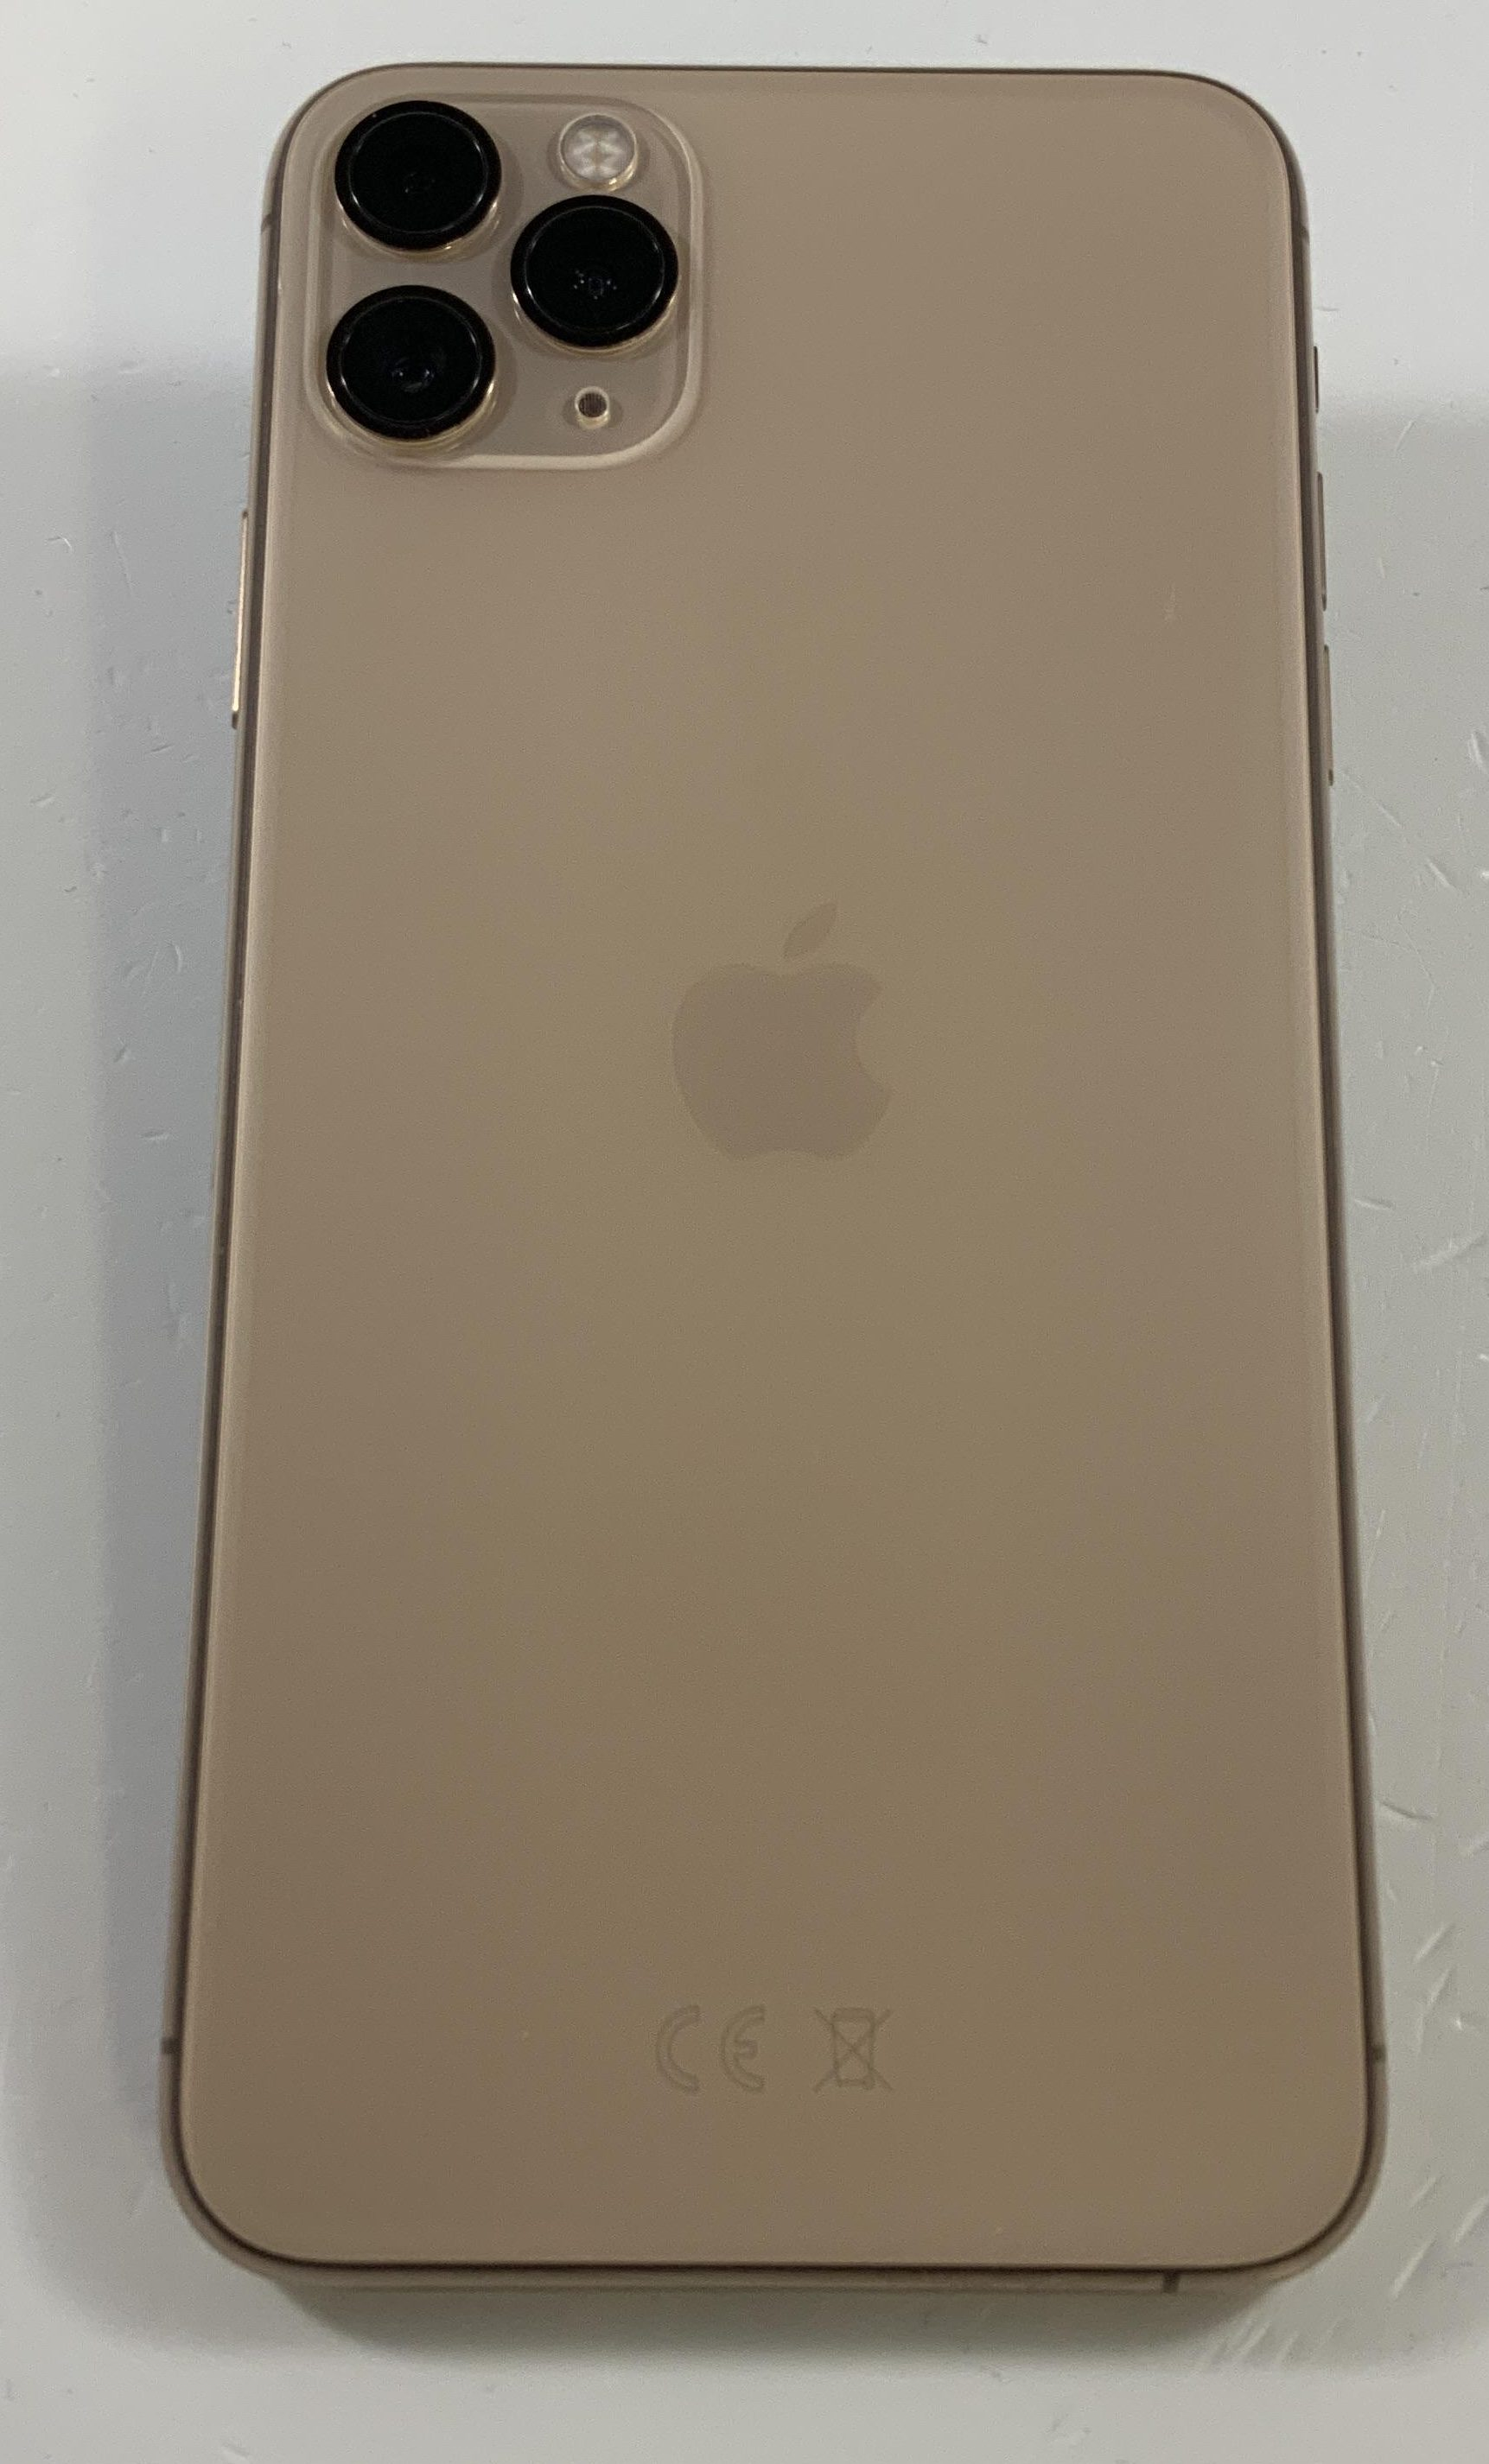 iPhone 11 Pro Max 64GB, 64GB, Gold, Afbeelding 2